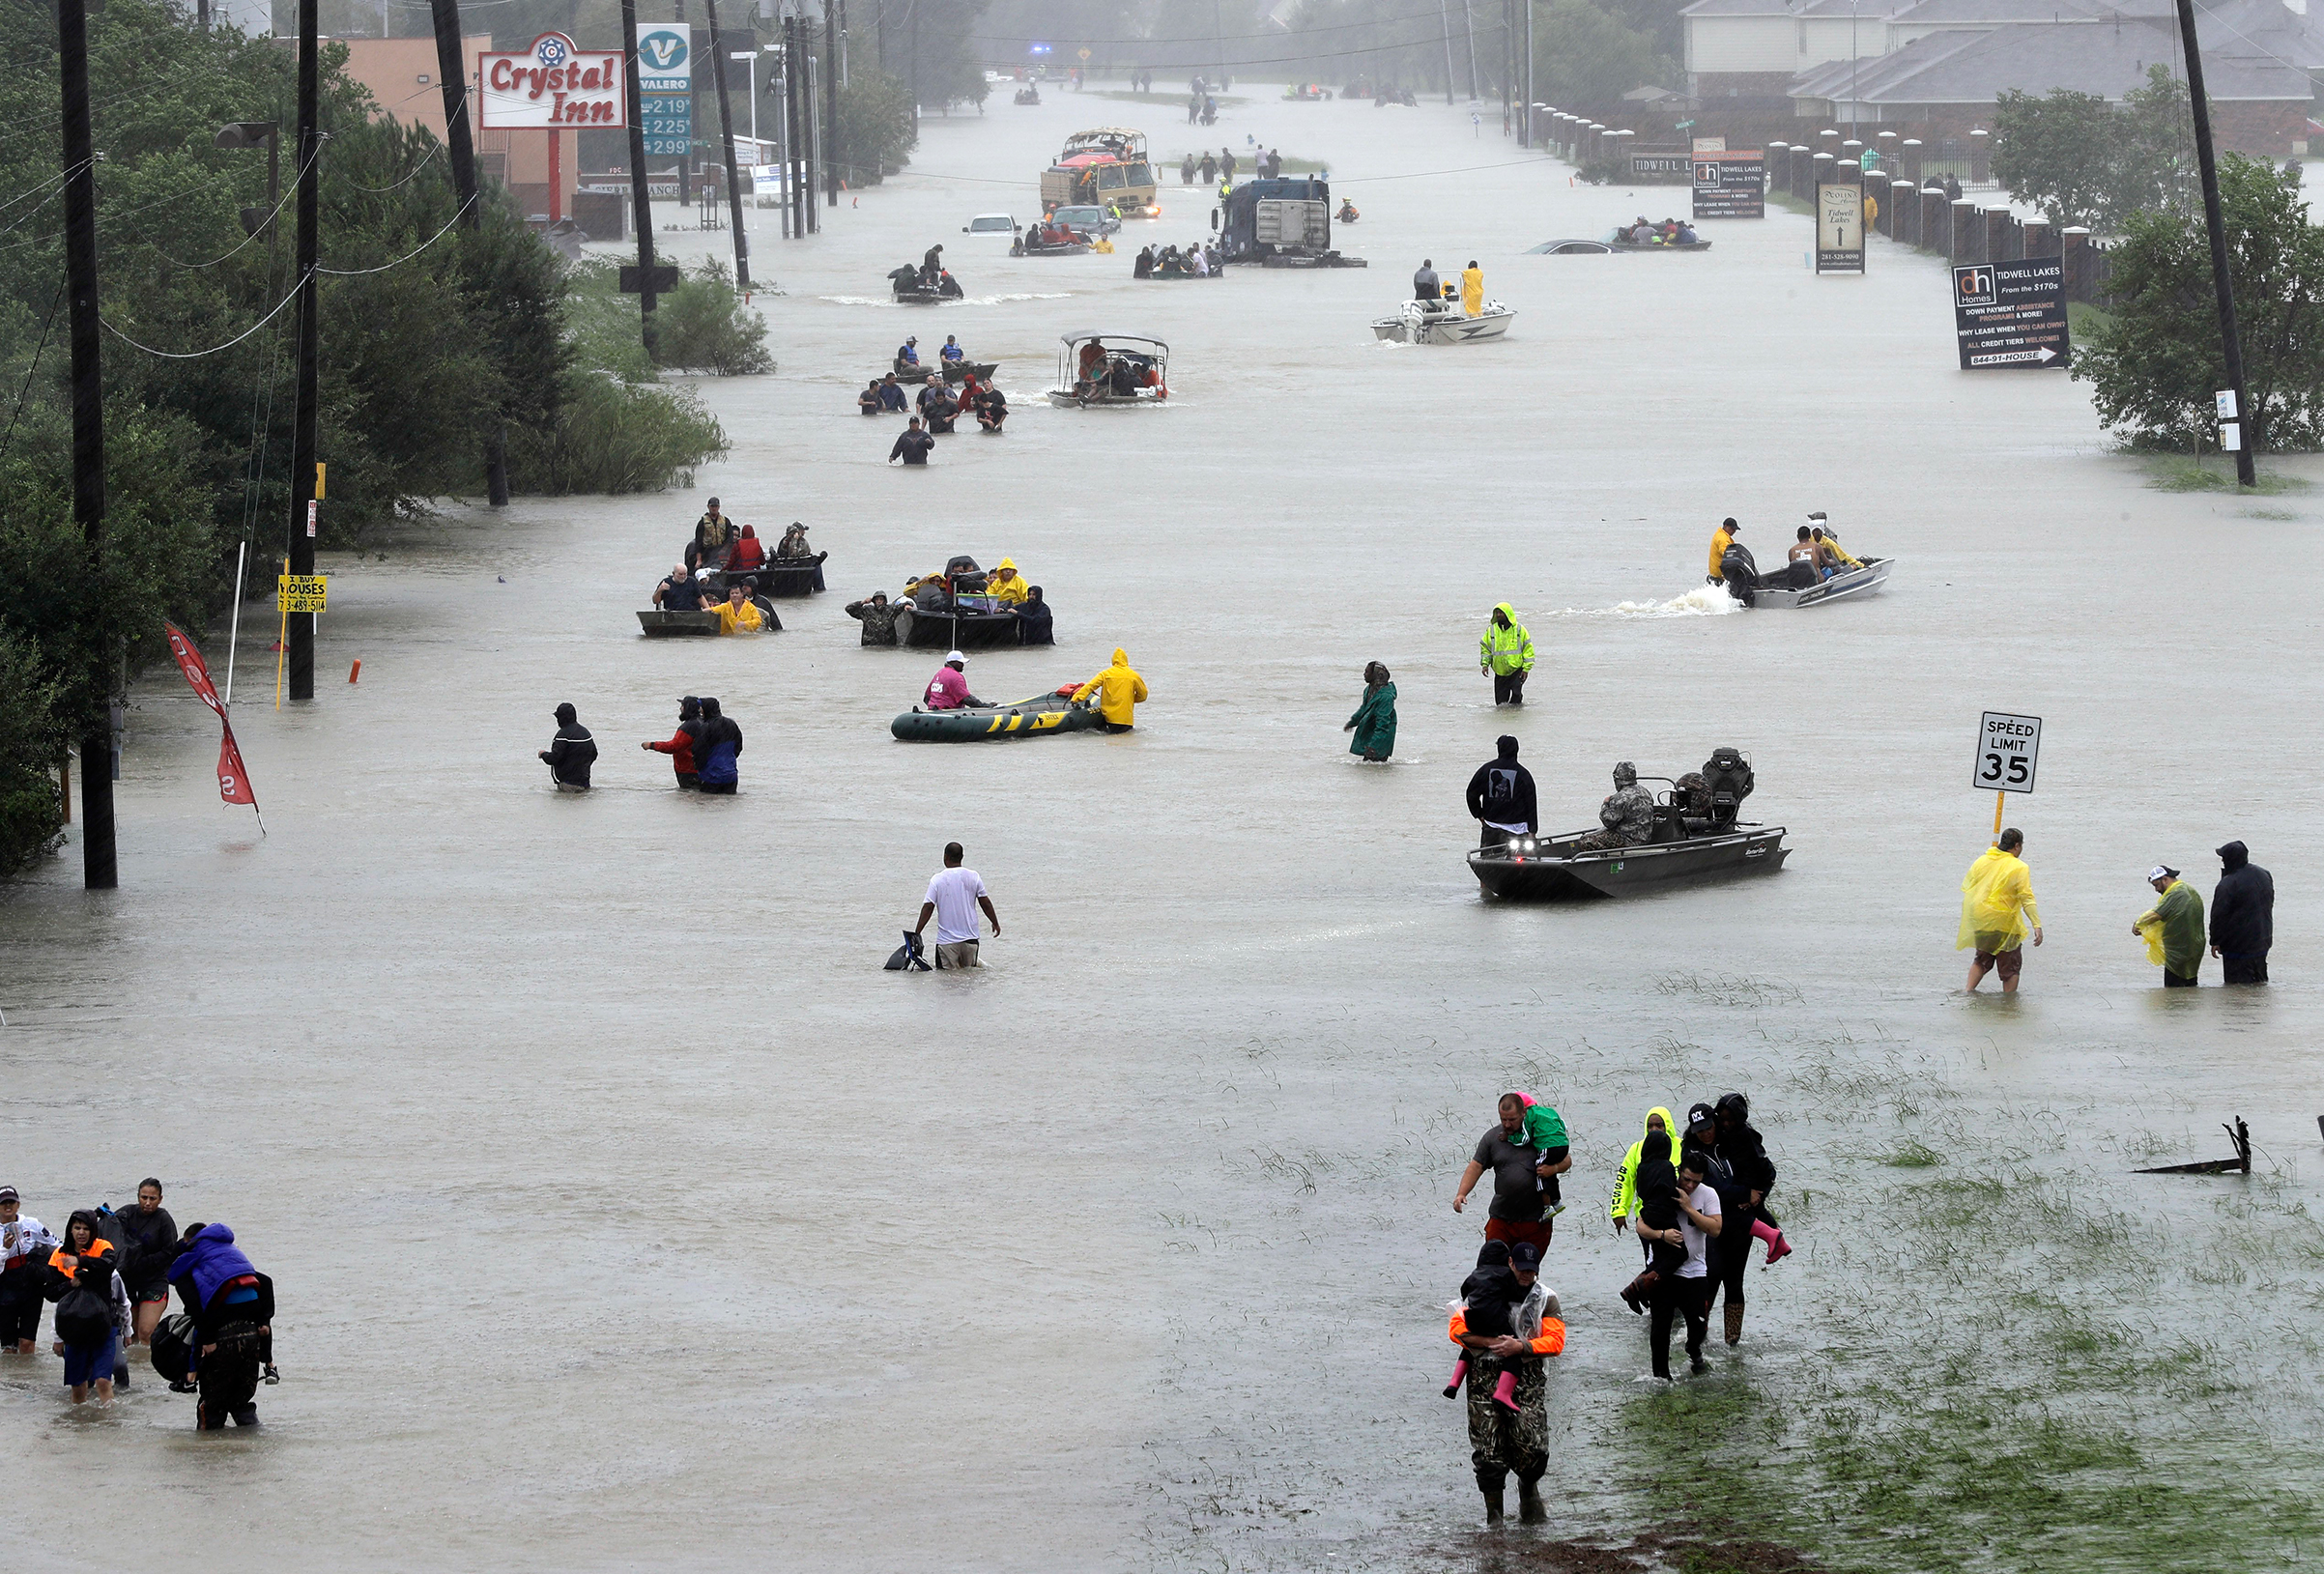 Rescue boats fill a flooded street as flood victims are evacuated floodwaters from Tropical Storm Harvey rise, Aug. 28, 2017, in Houston.